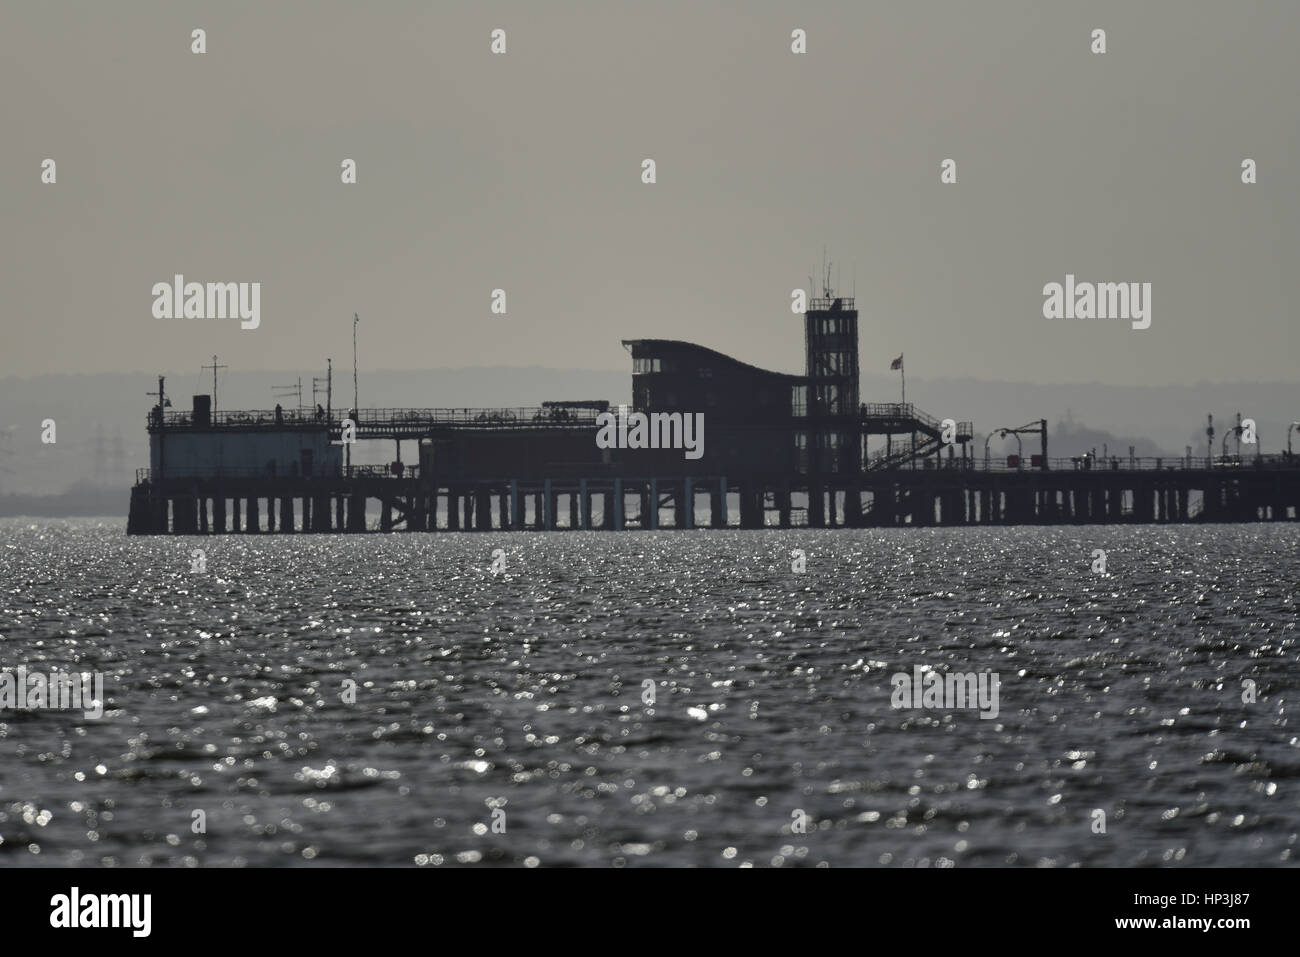 The end of Southend Pier, Essex, on a hazy winter's day. Space for copy - Stock Image